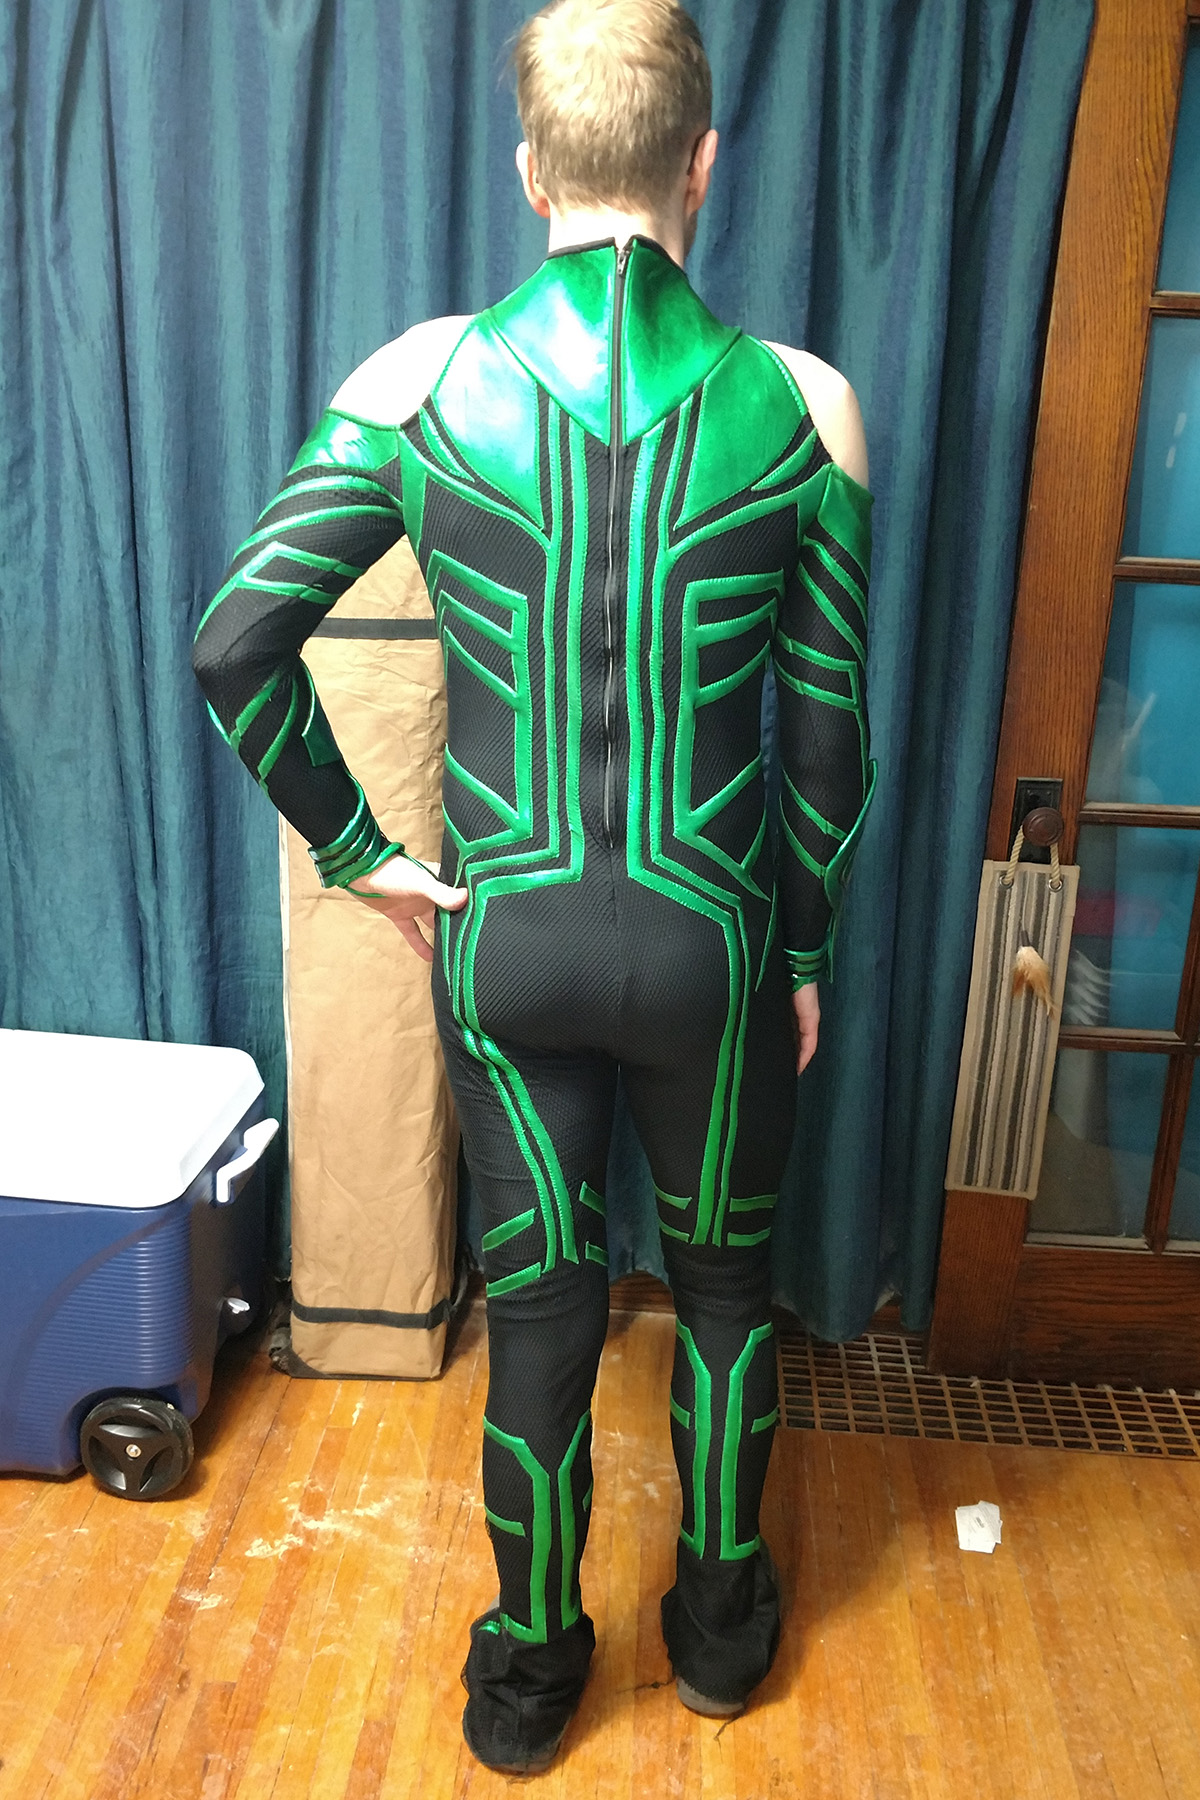 A back view of a blonde man wearing an MCU Hela costume.